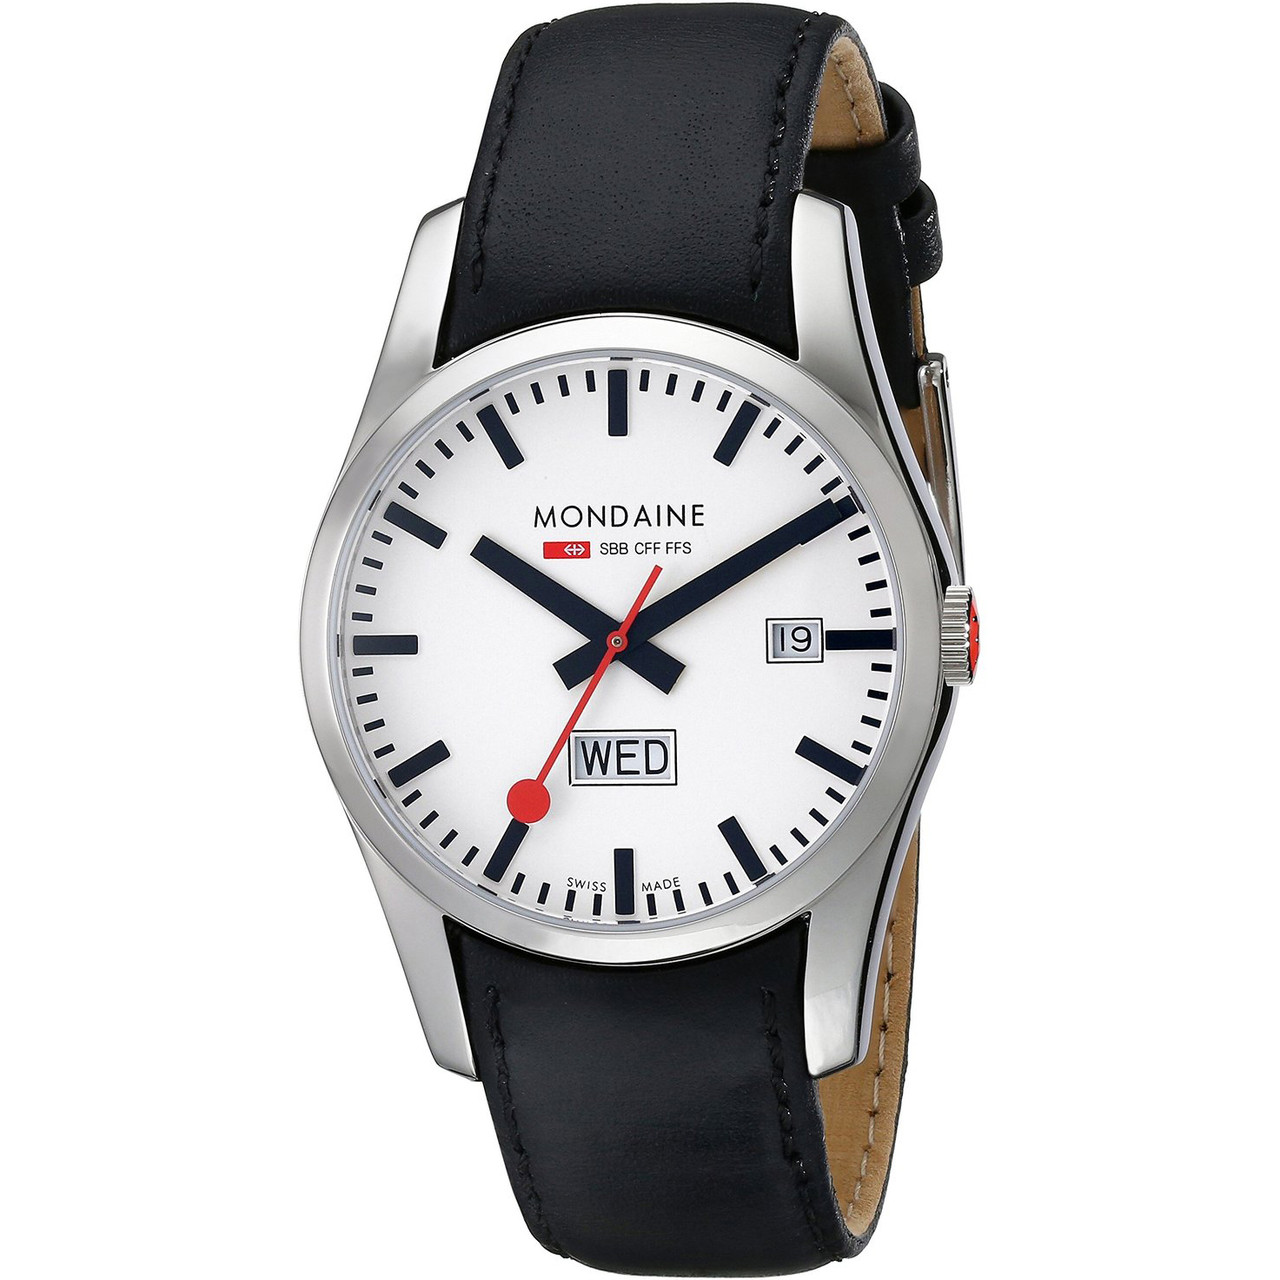 Mondaine Retro Gents Leather Strap Watch With Day And Date A6673034011SBB